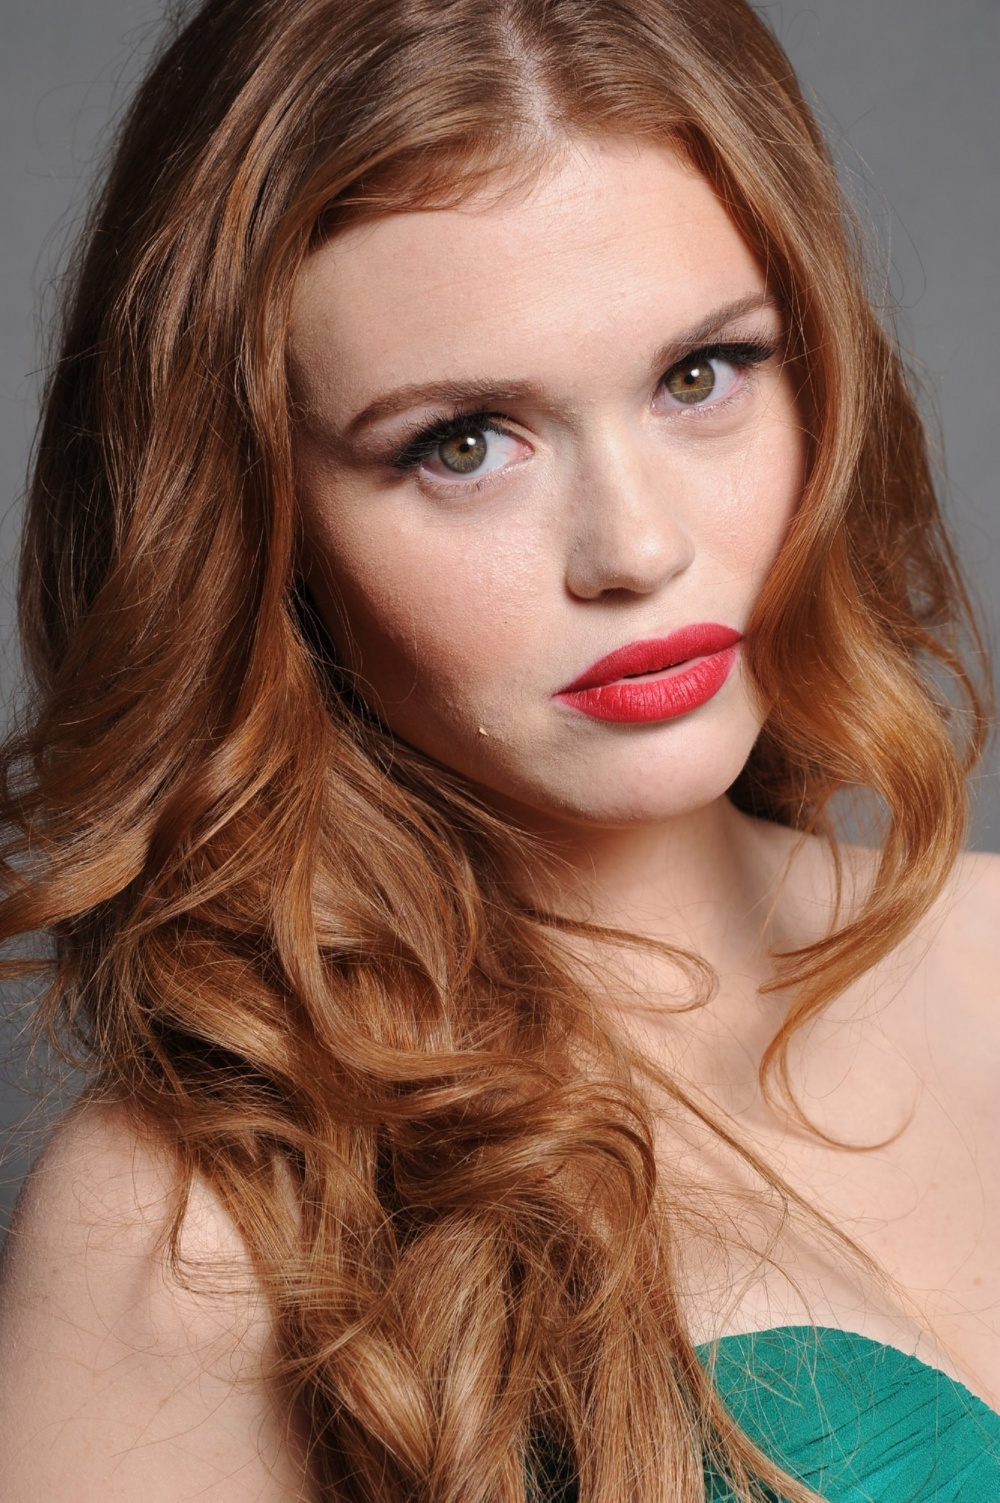 Hot Tv Babe Every Week:holland Roden 天涯小筑